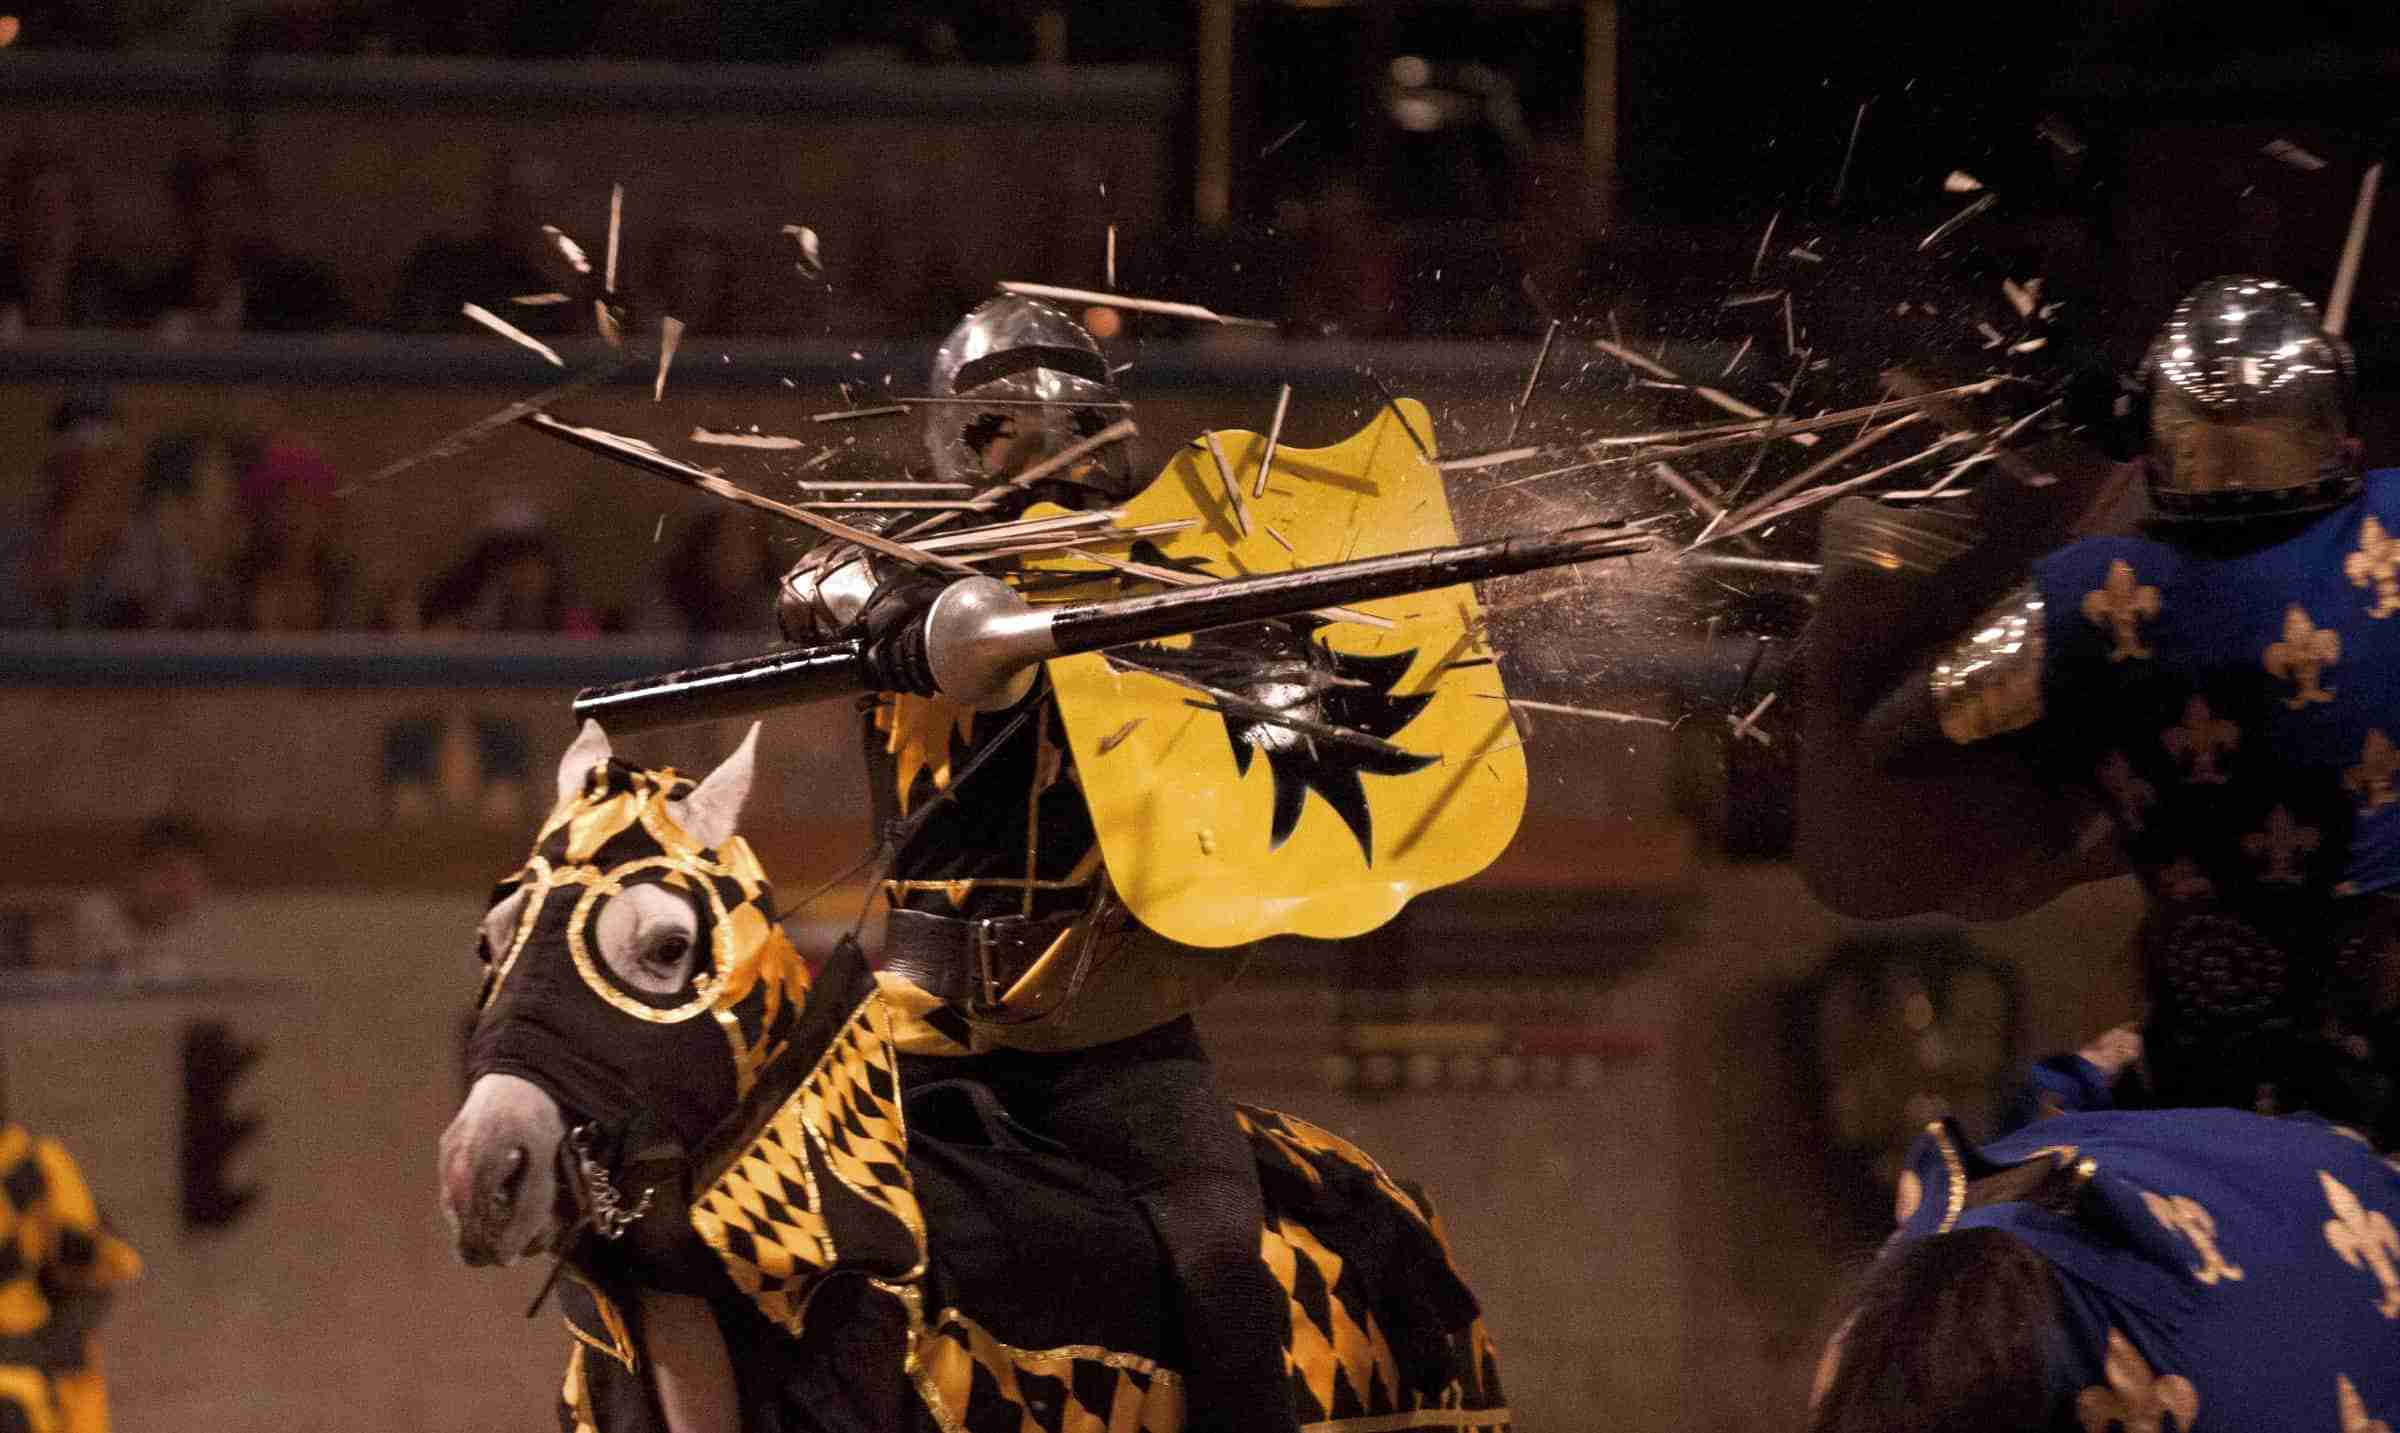 The new show at Medieval TImes in Buena Park. Photographs by Matt ...